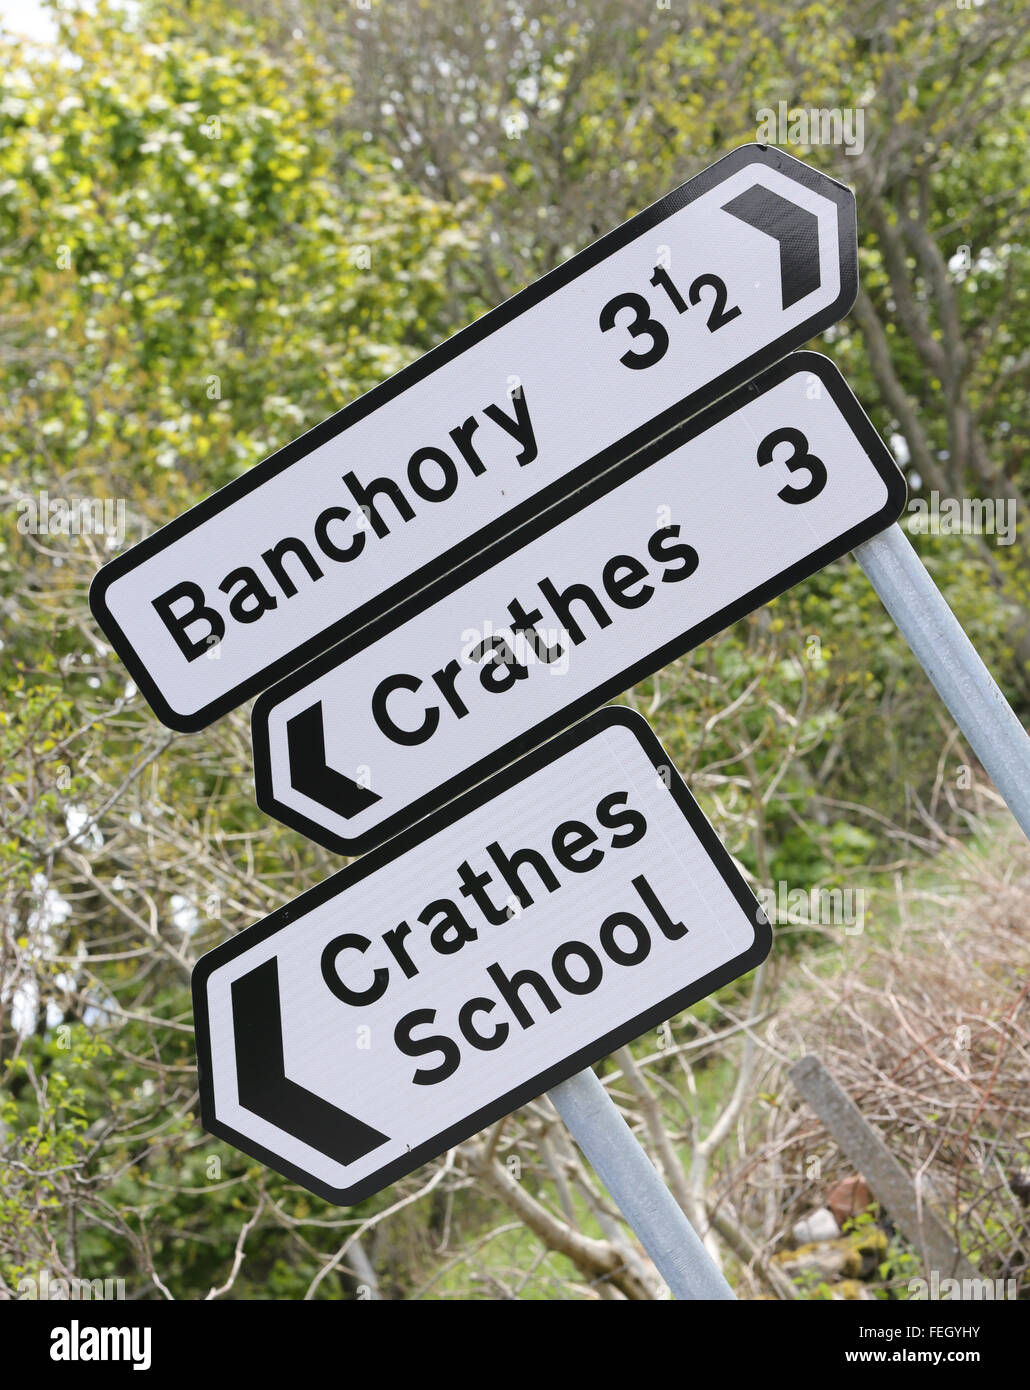 Sign for the village of Crathes and Banchory and Crathes school, Aberdeenshire, Scotland, uk, - Stock Image